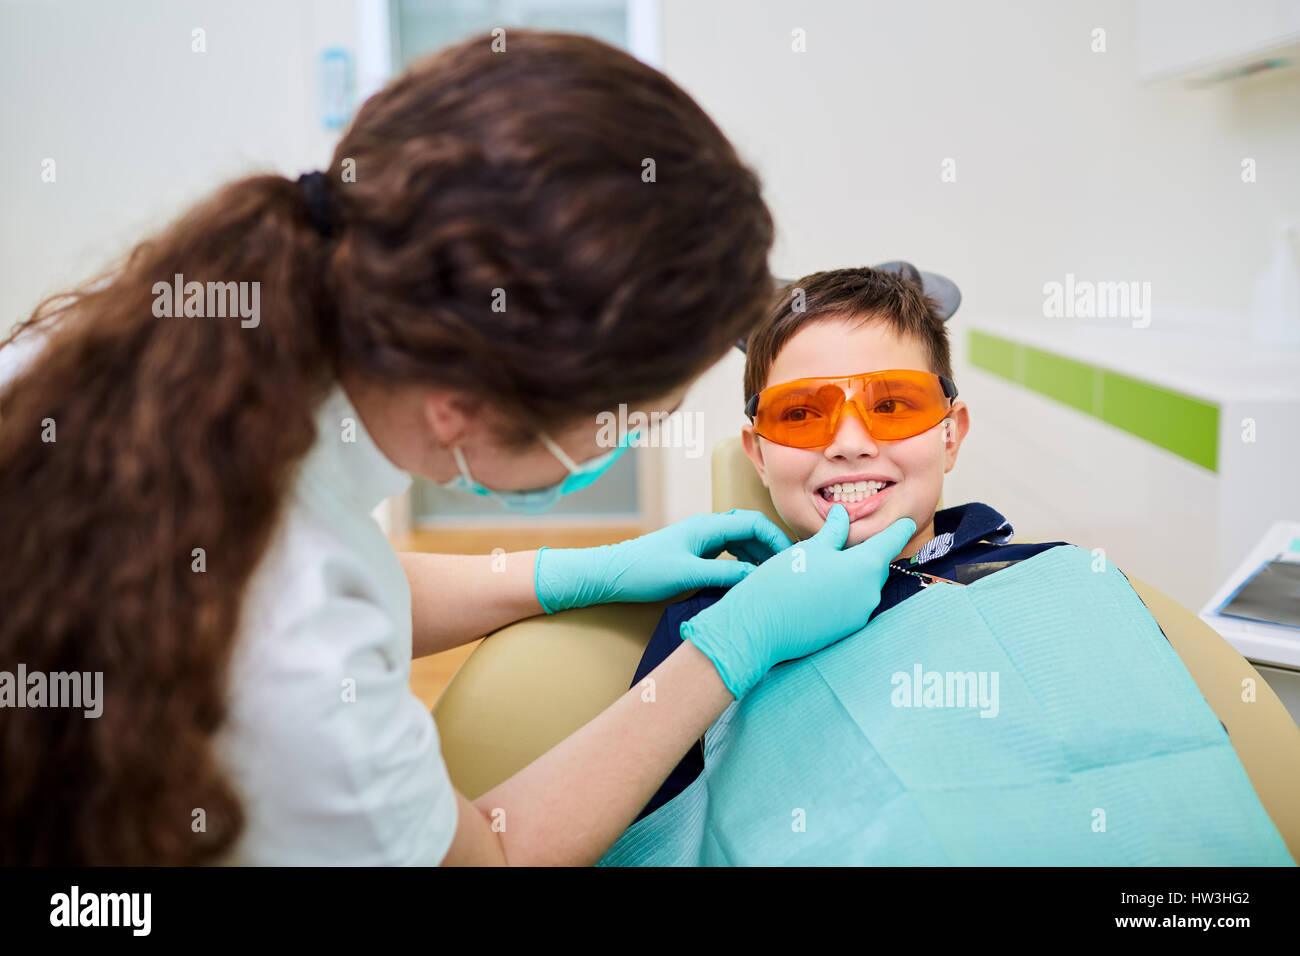 A child kid at a dentist  reception in  dental office - Stock Image